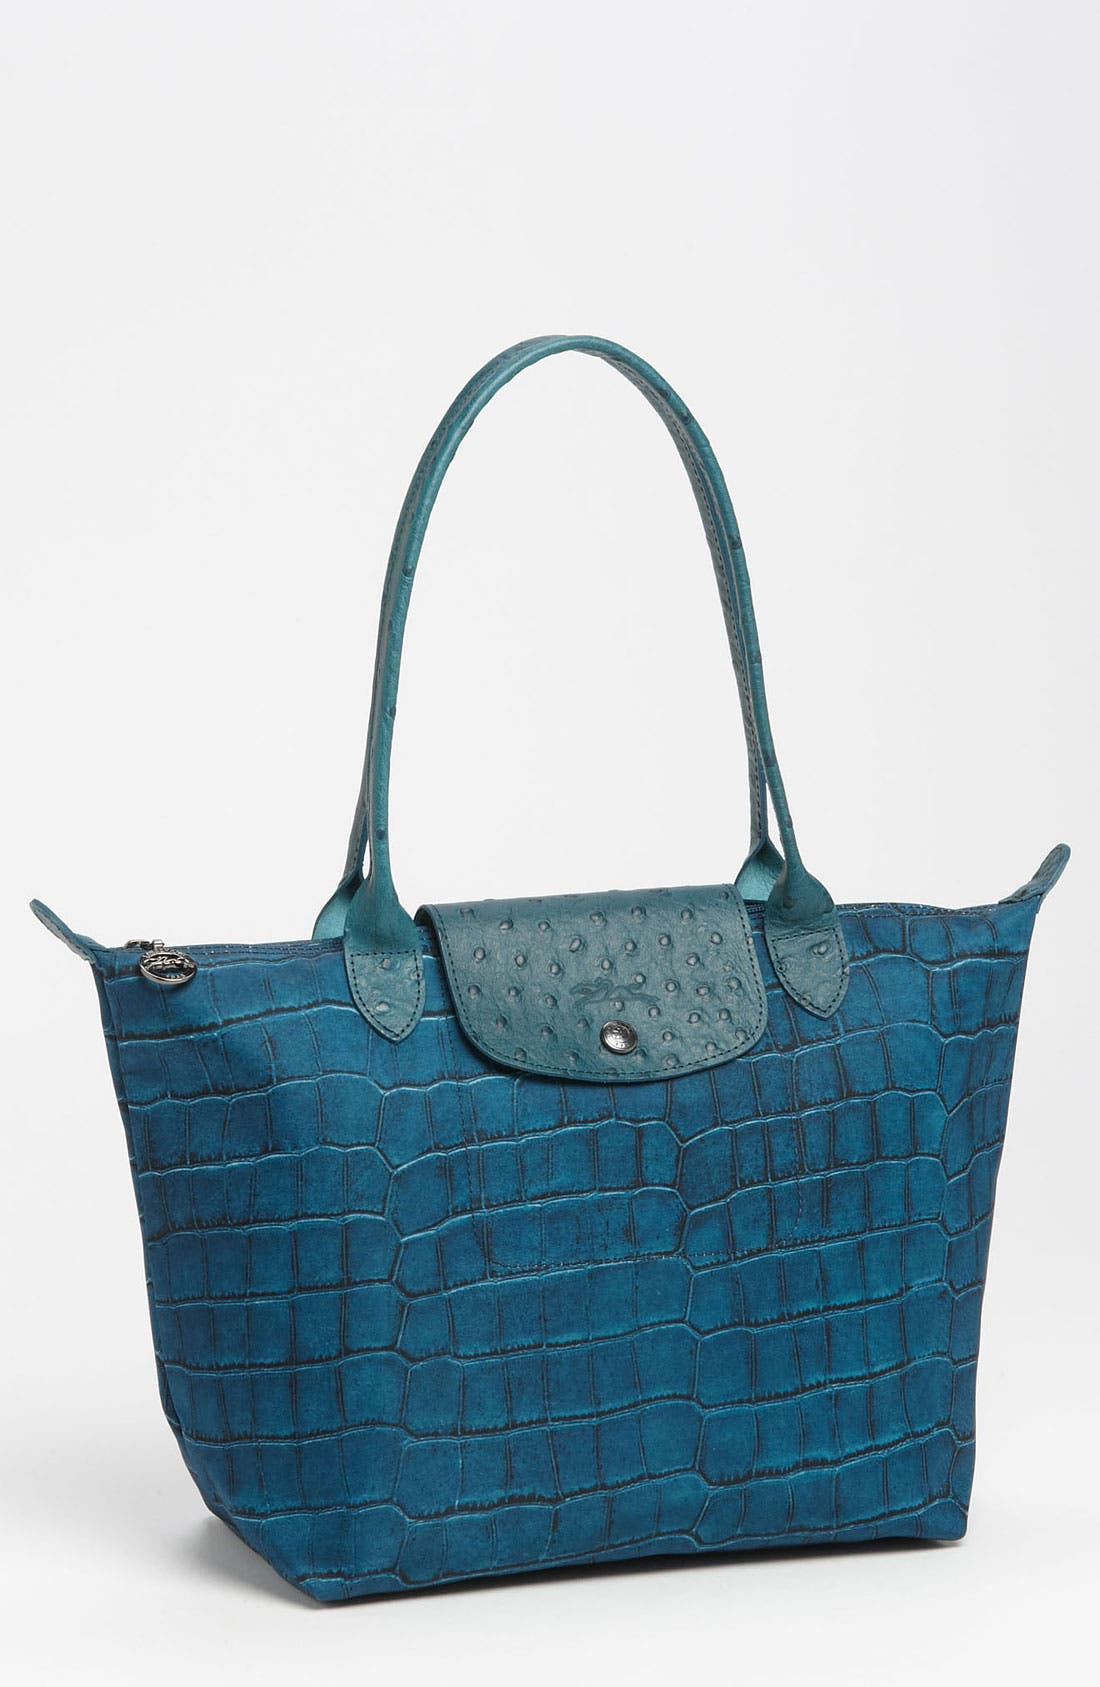 Alternate Image 1 Selected - Longchamp 'Le Pliage Croco' Small Shoulder Tote